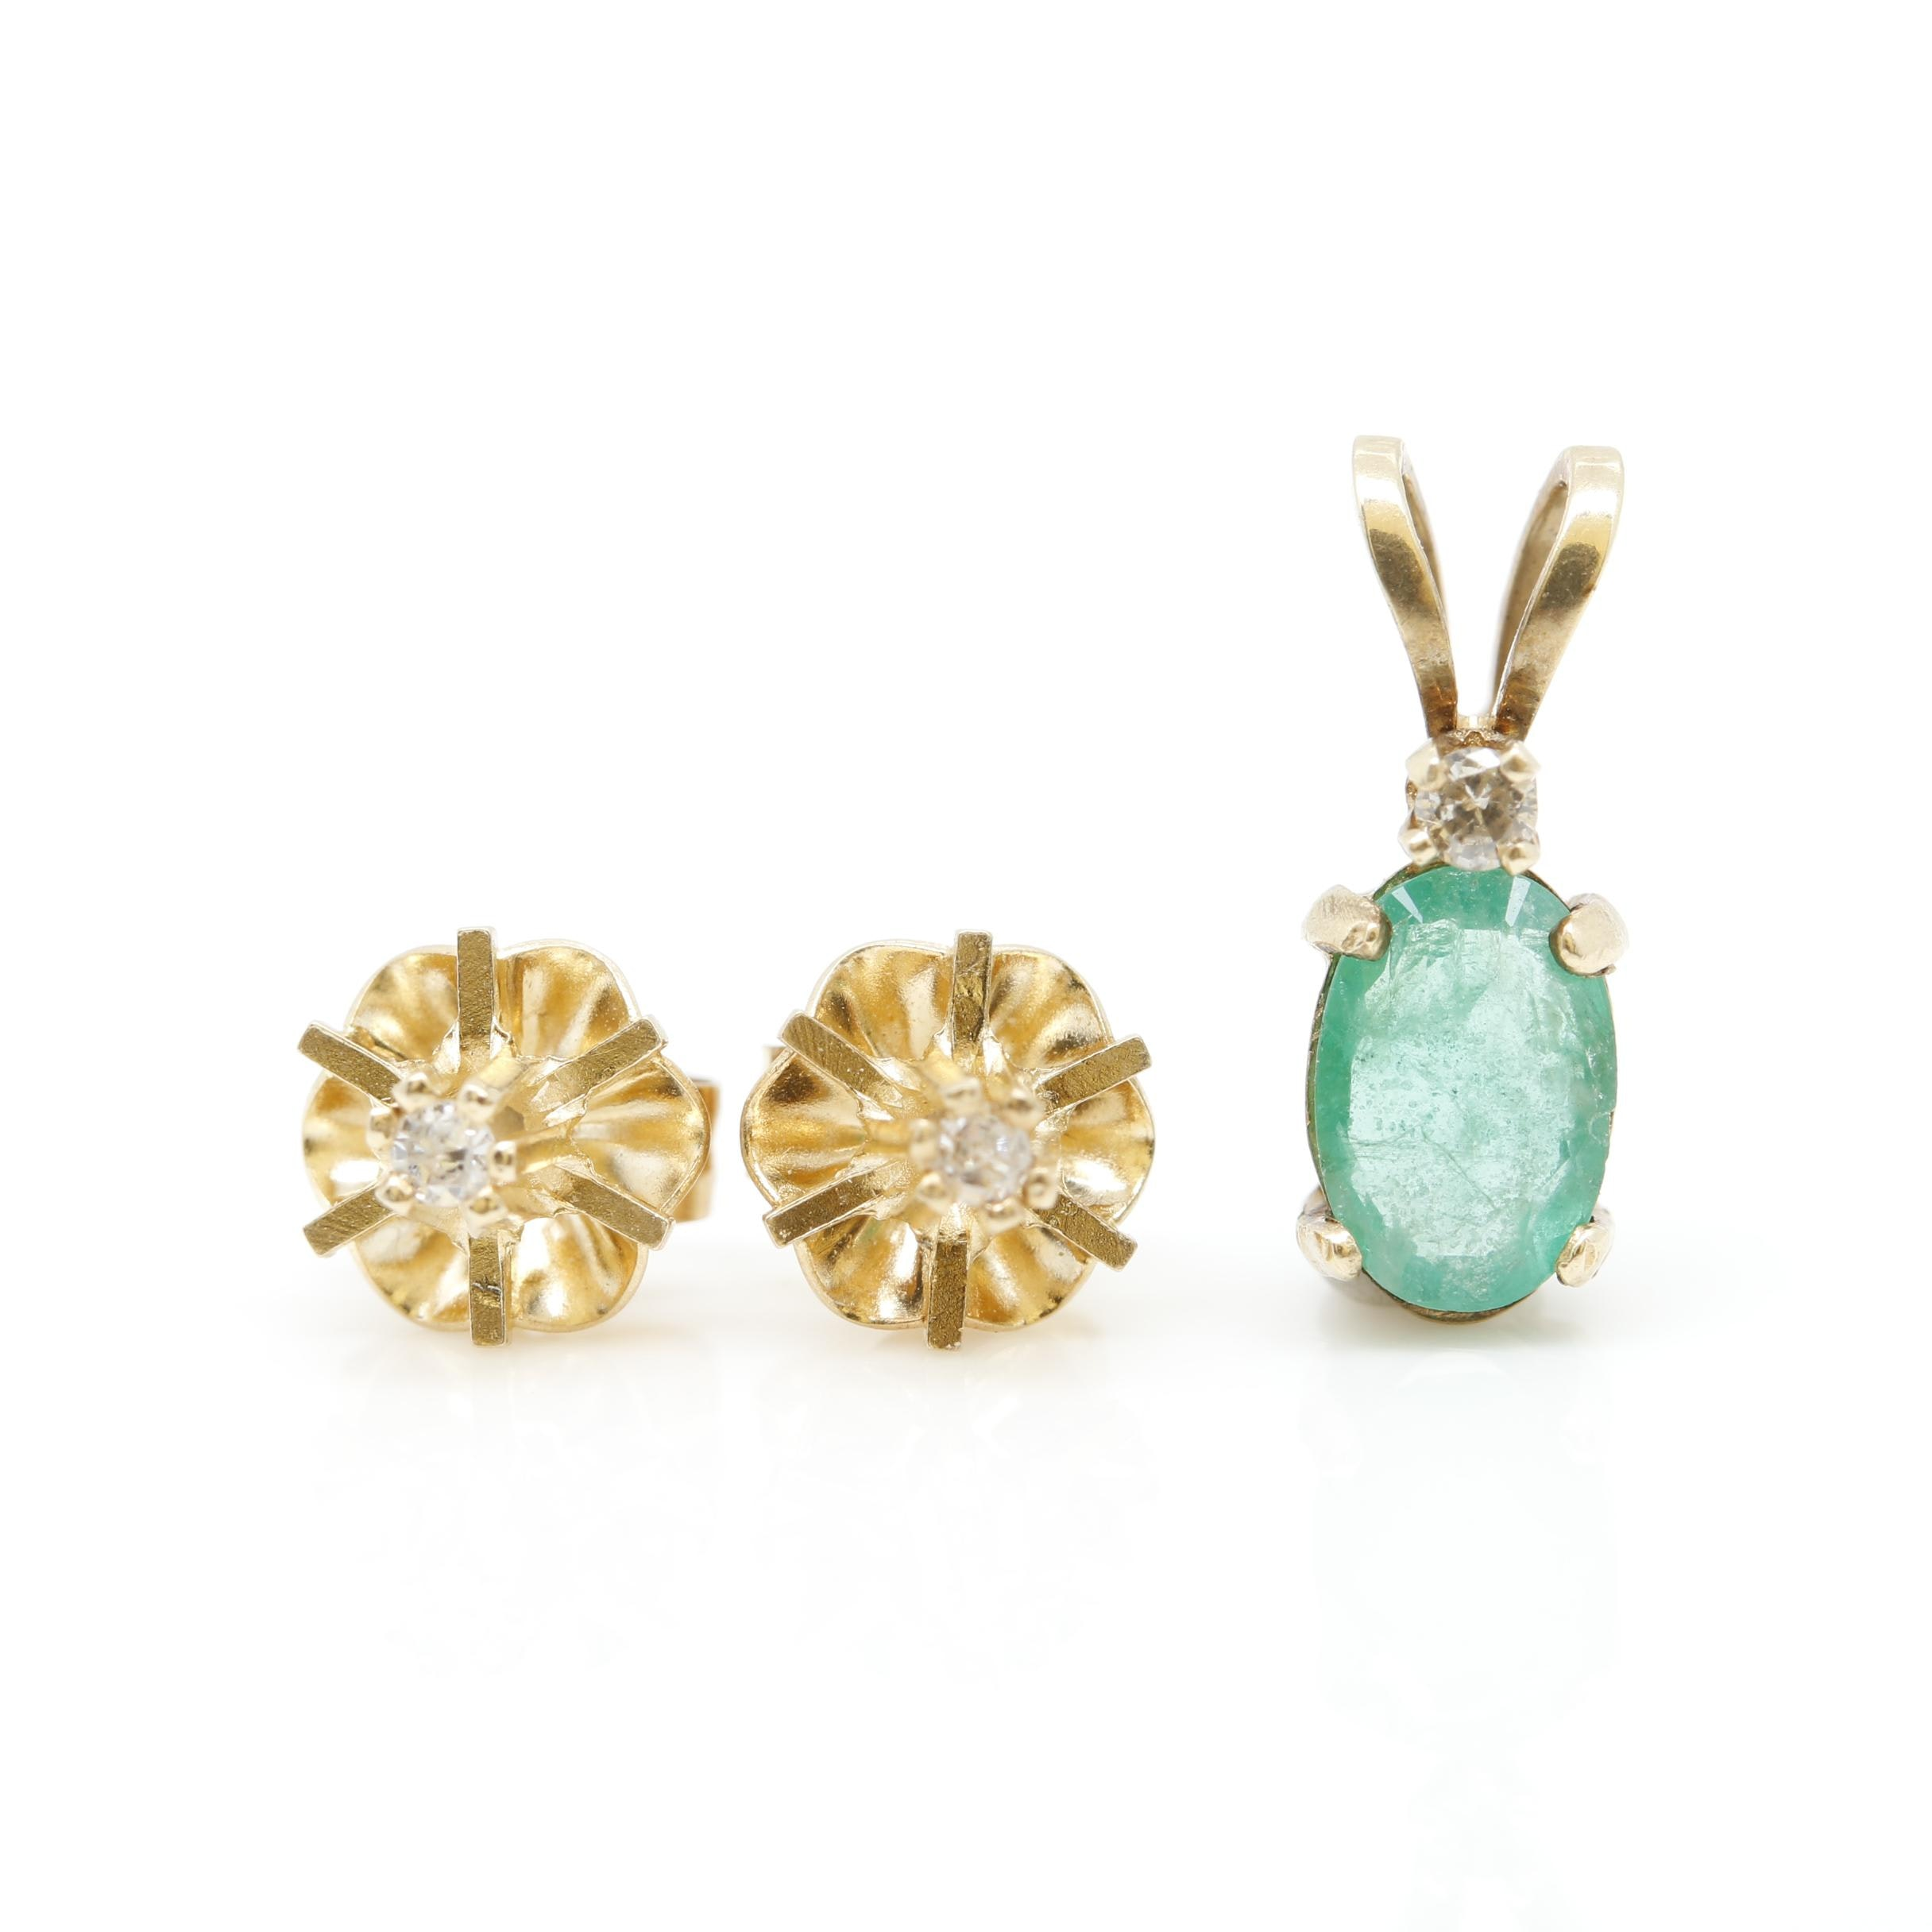 14K Yellow Gold Emerald and Diamond Pendant and Earrings